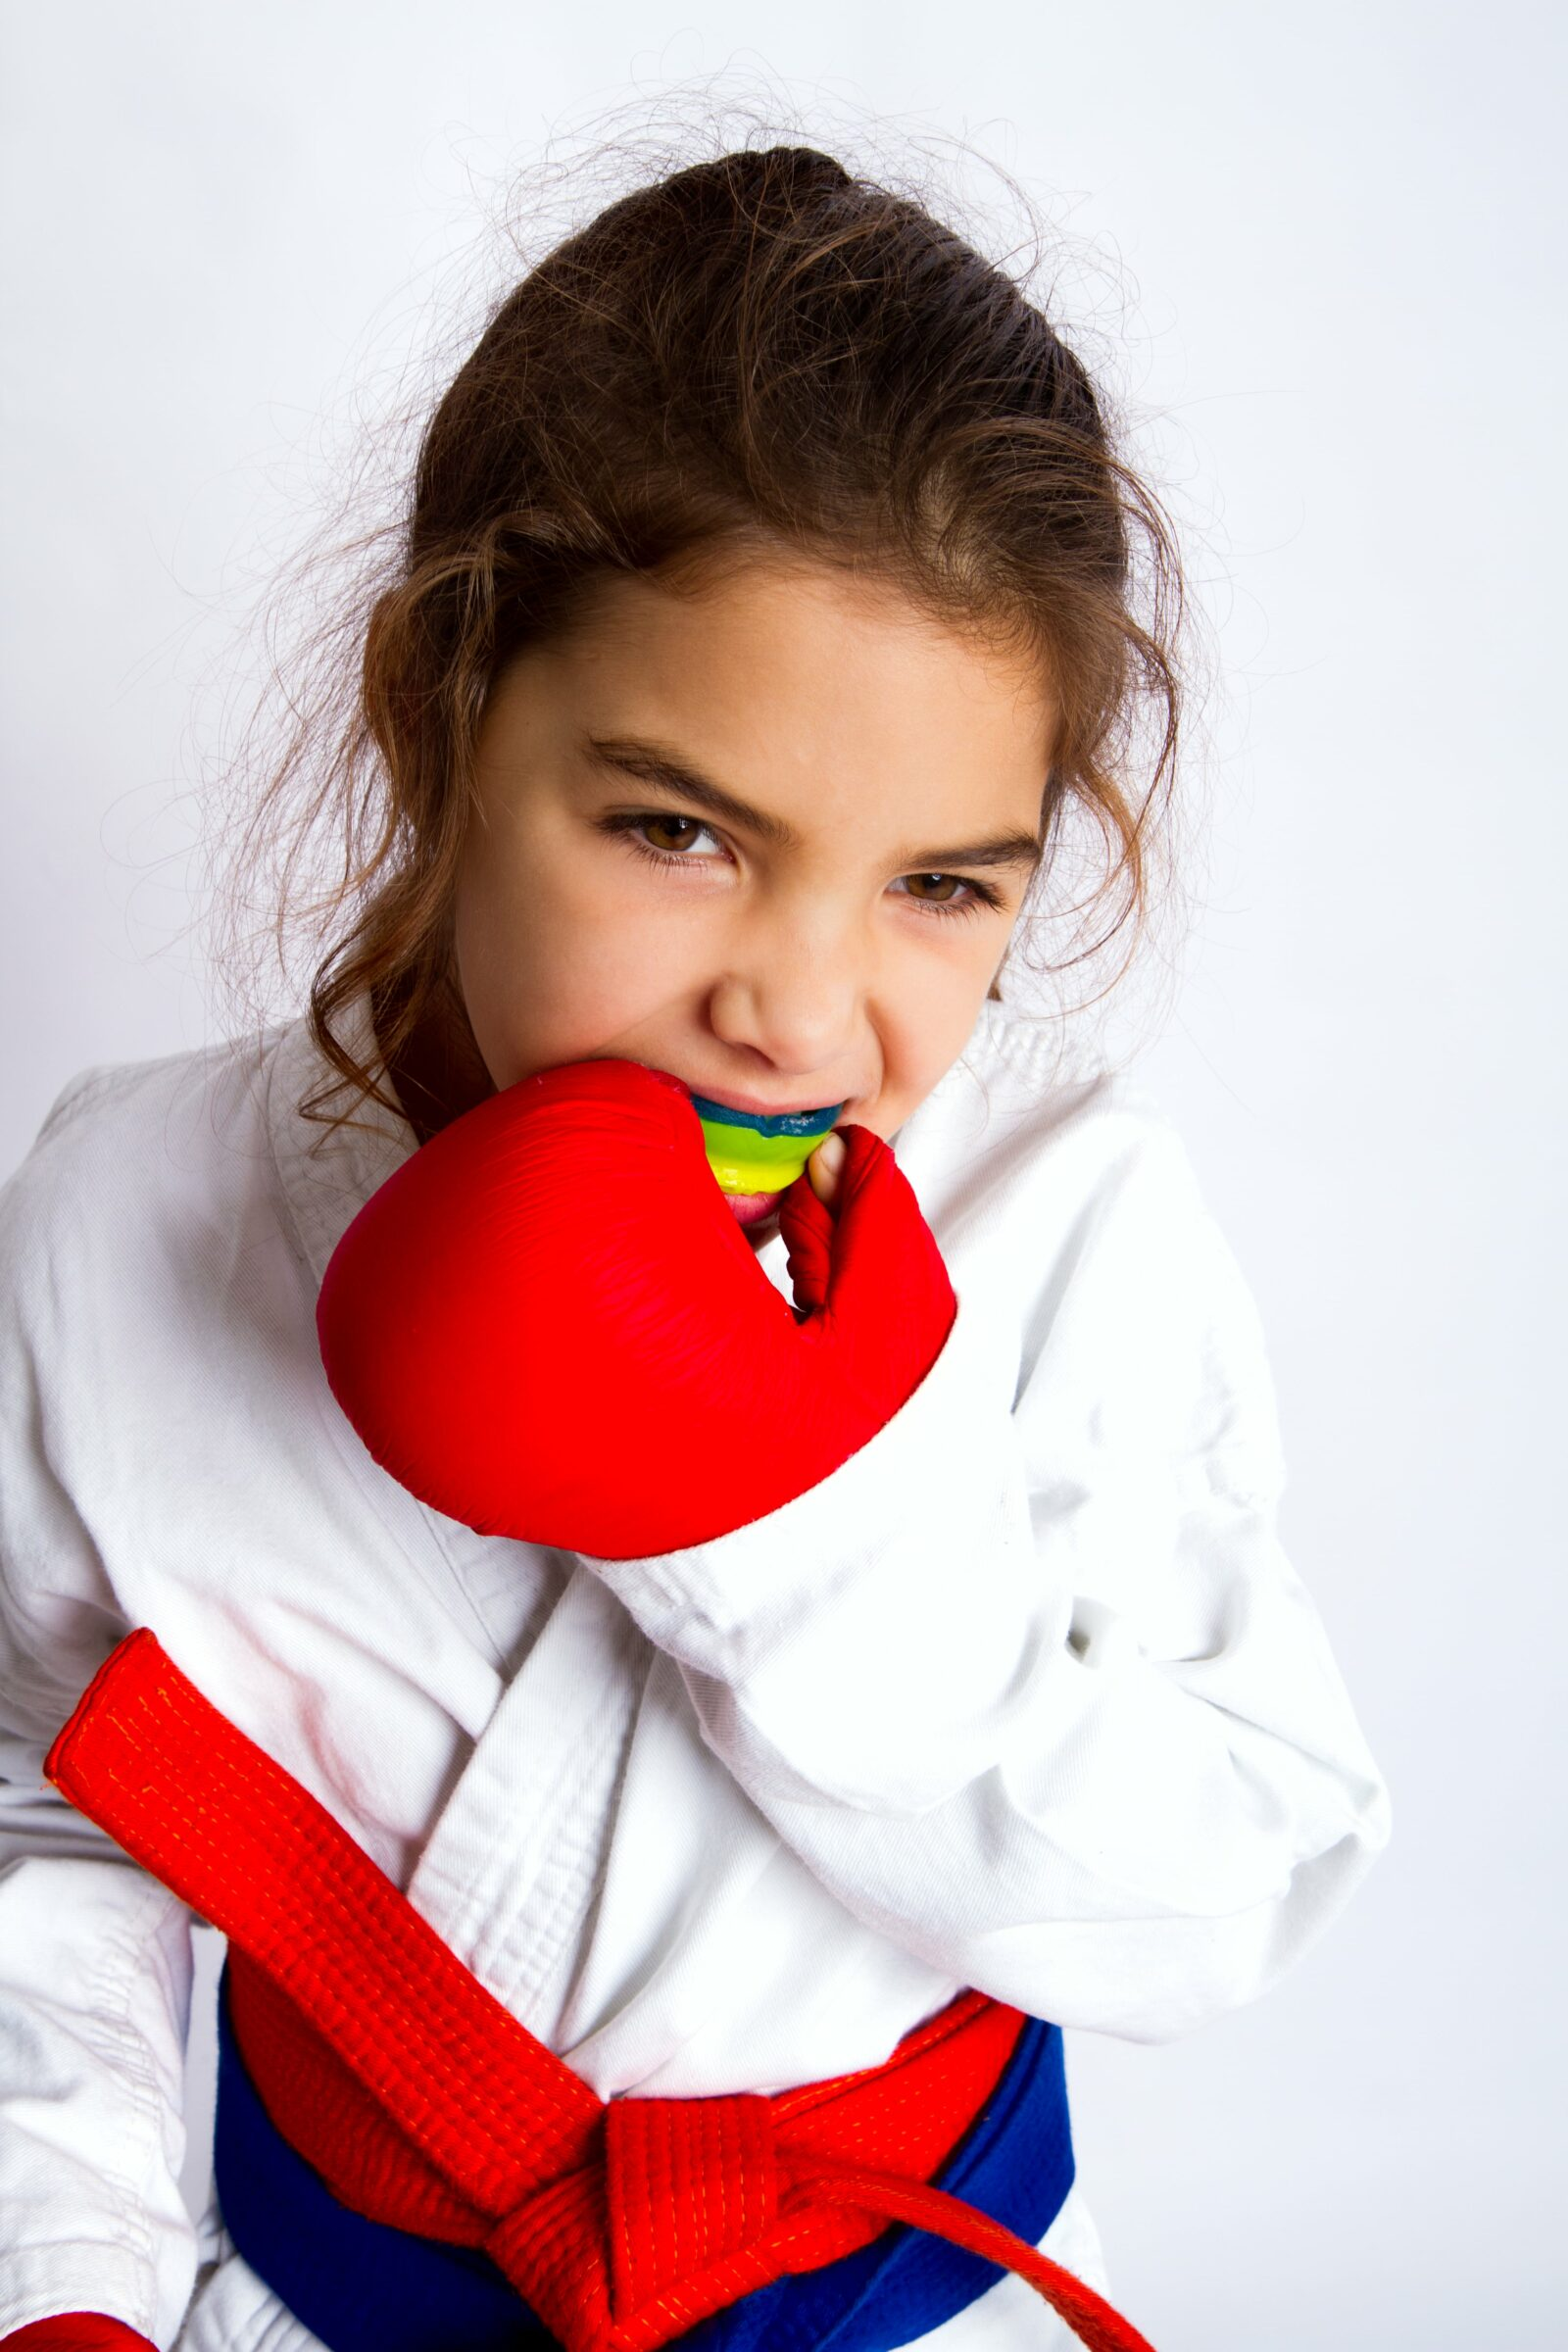 young girl in karate outfit putting in a mouthguard